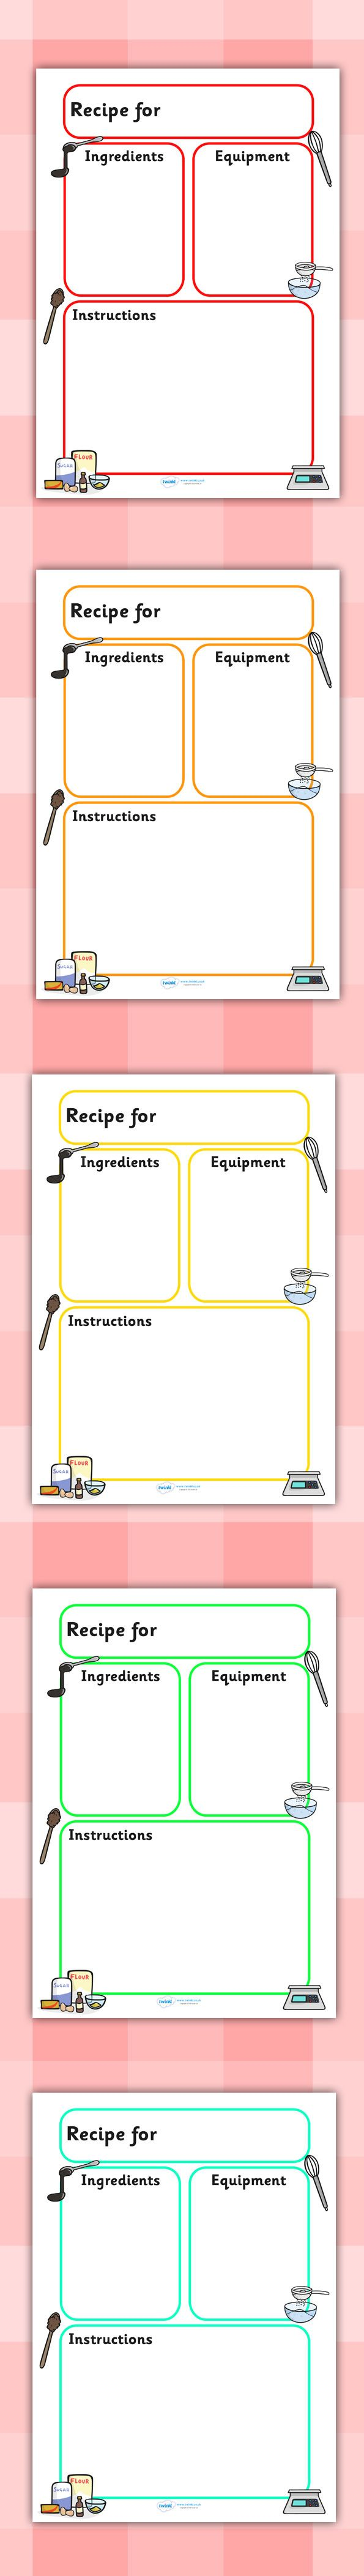 Twinkl resources recipe template printable resources for recipe template spiritdancerdesigns Images